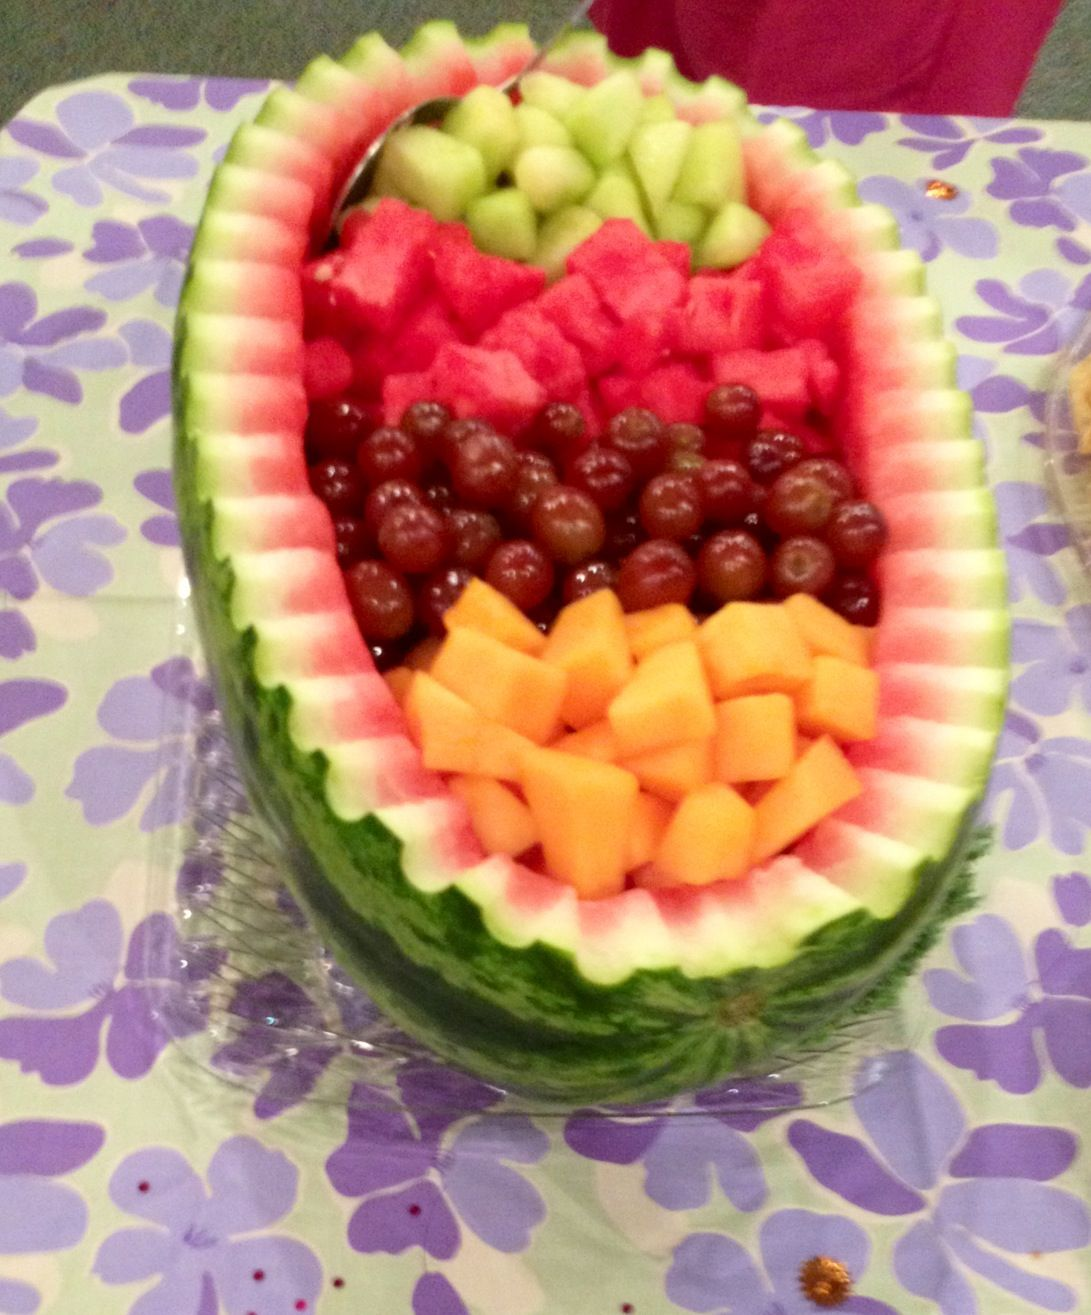 Entrees art gallery watermelon fruit bowls